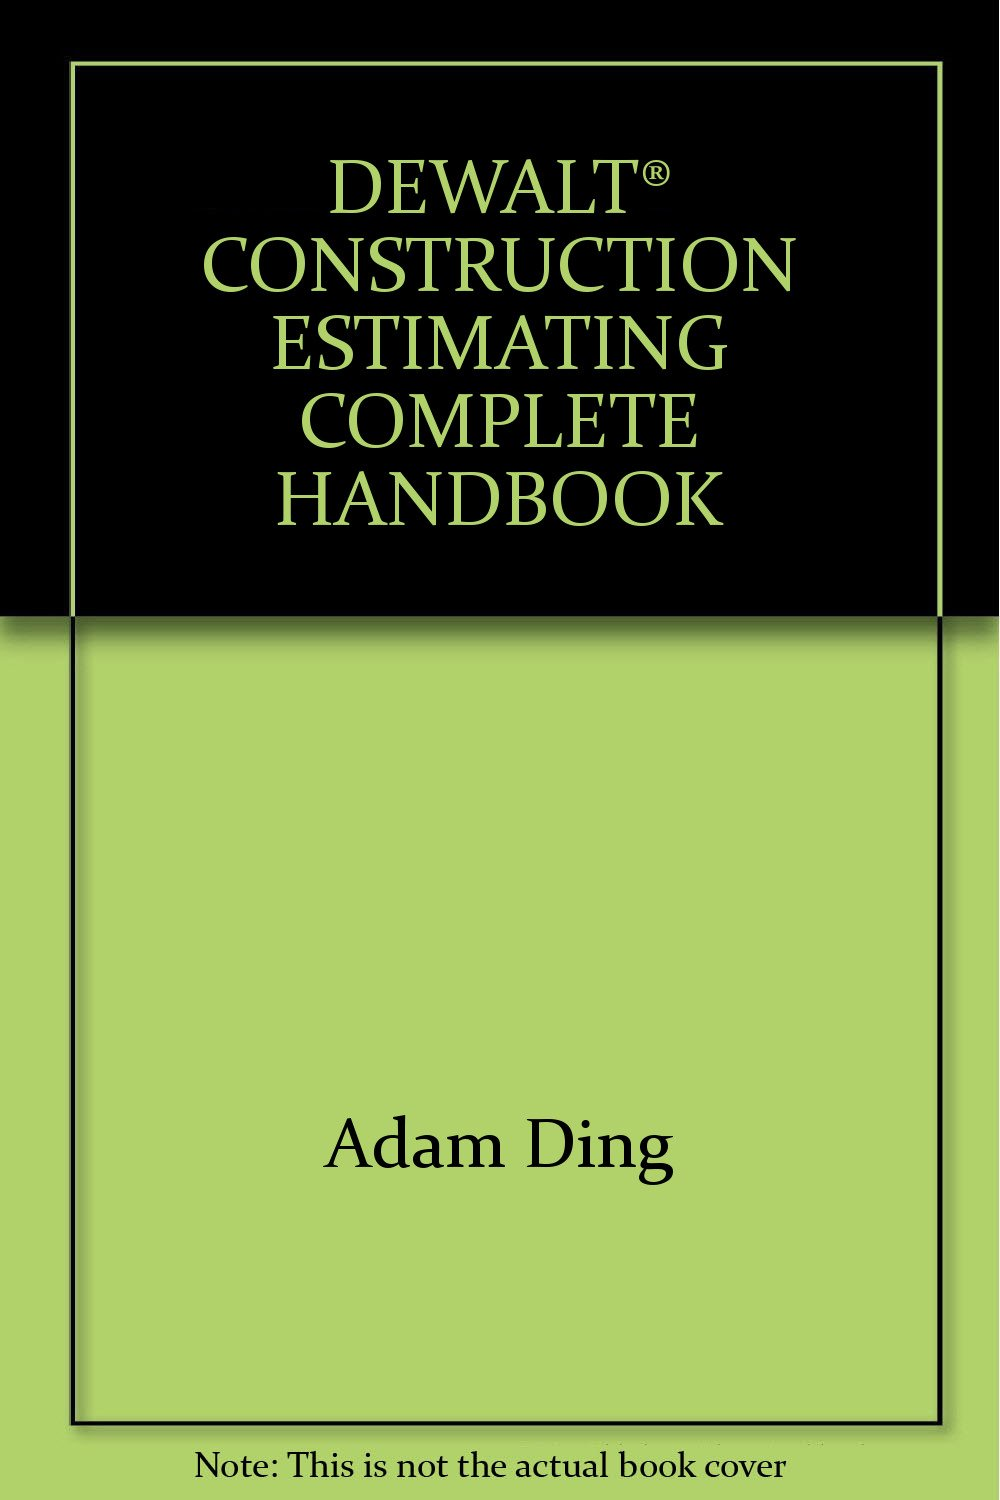 DEWALT® CONSTRUCTION ESTIMATING COMPLETE HANDBOOK: Adam Ding